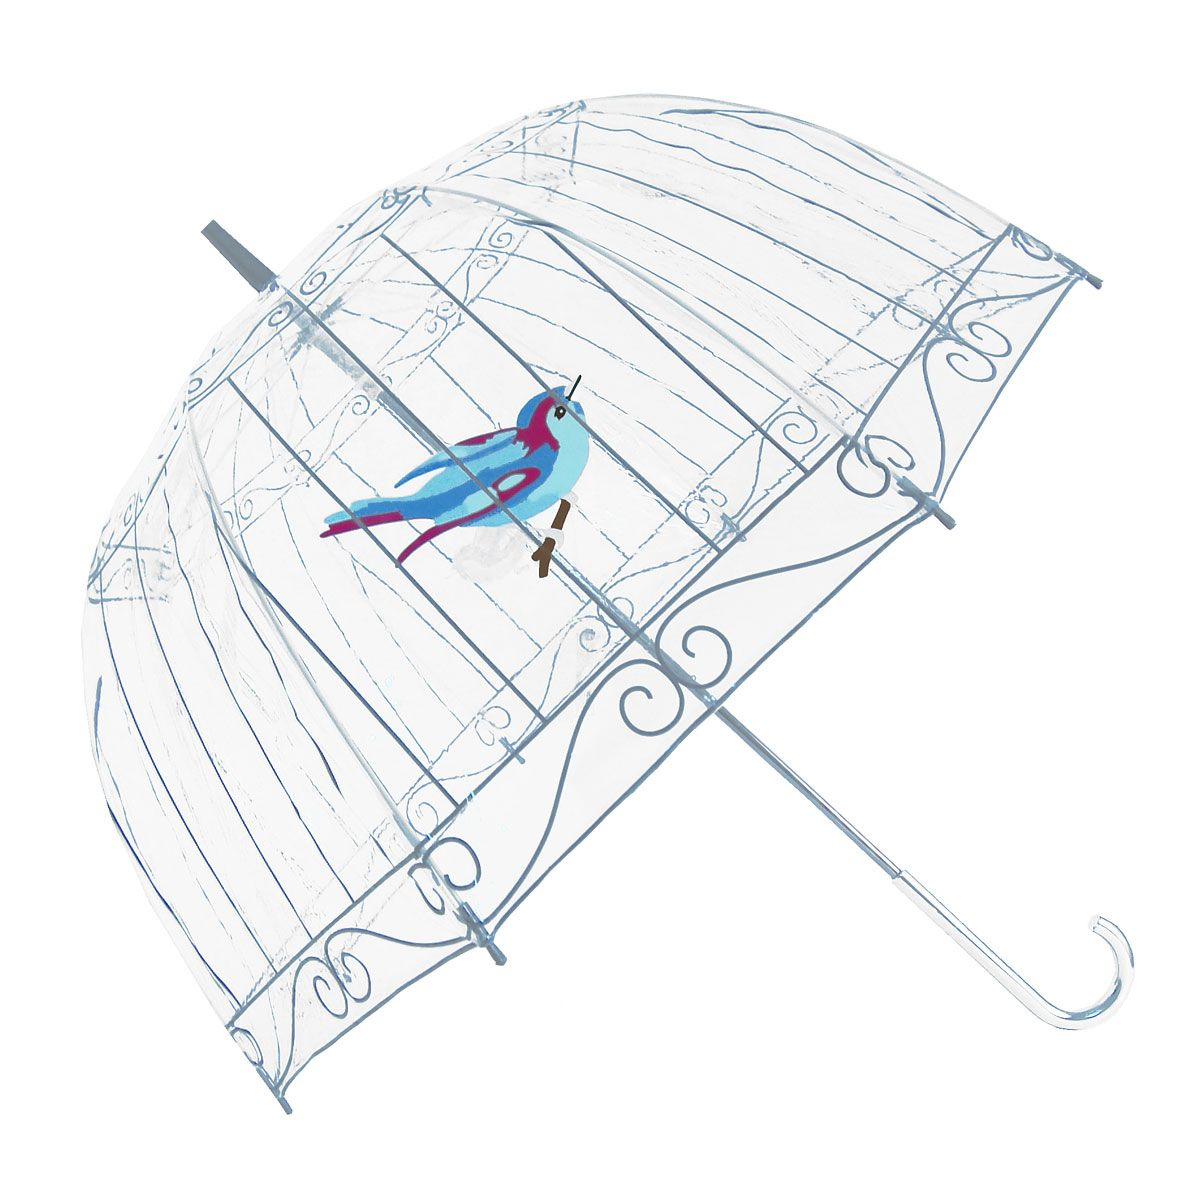 Accessorize To Maximize: April Showers Means Get Your Life Ready With A  Chic Umbrella!